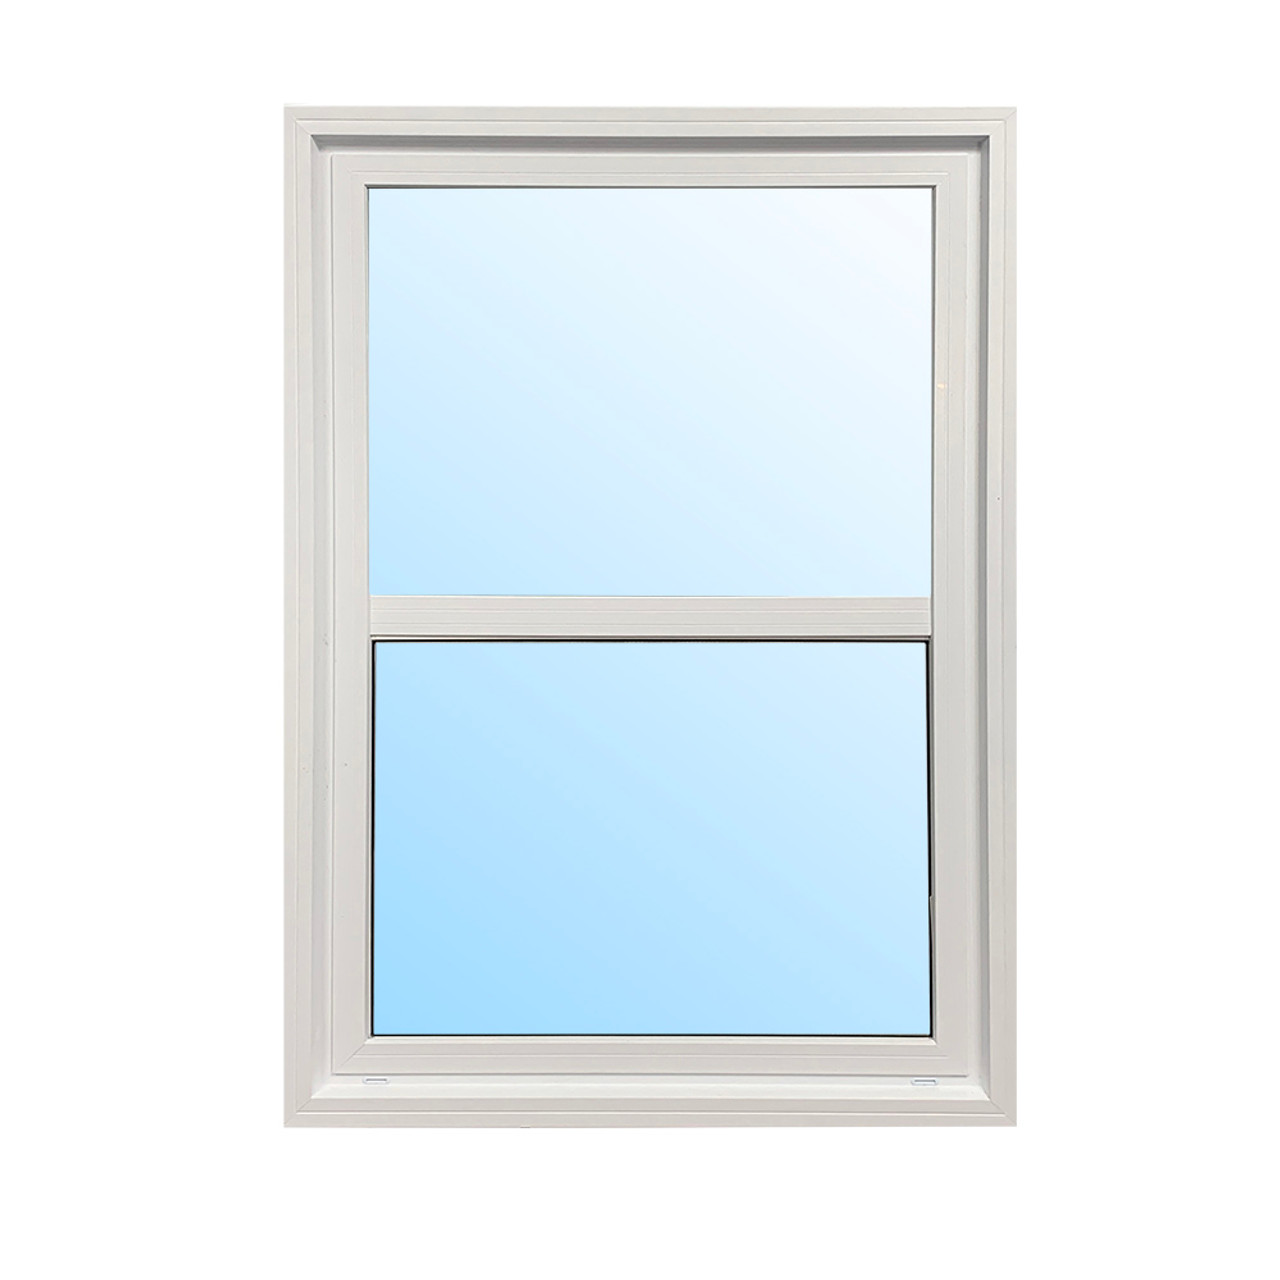 "Castlegard | 36"" x 54"" Single Hung Window 